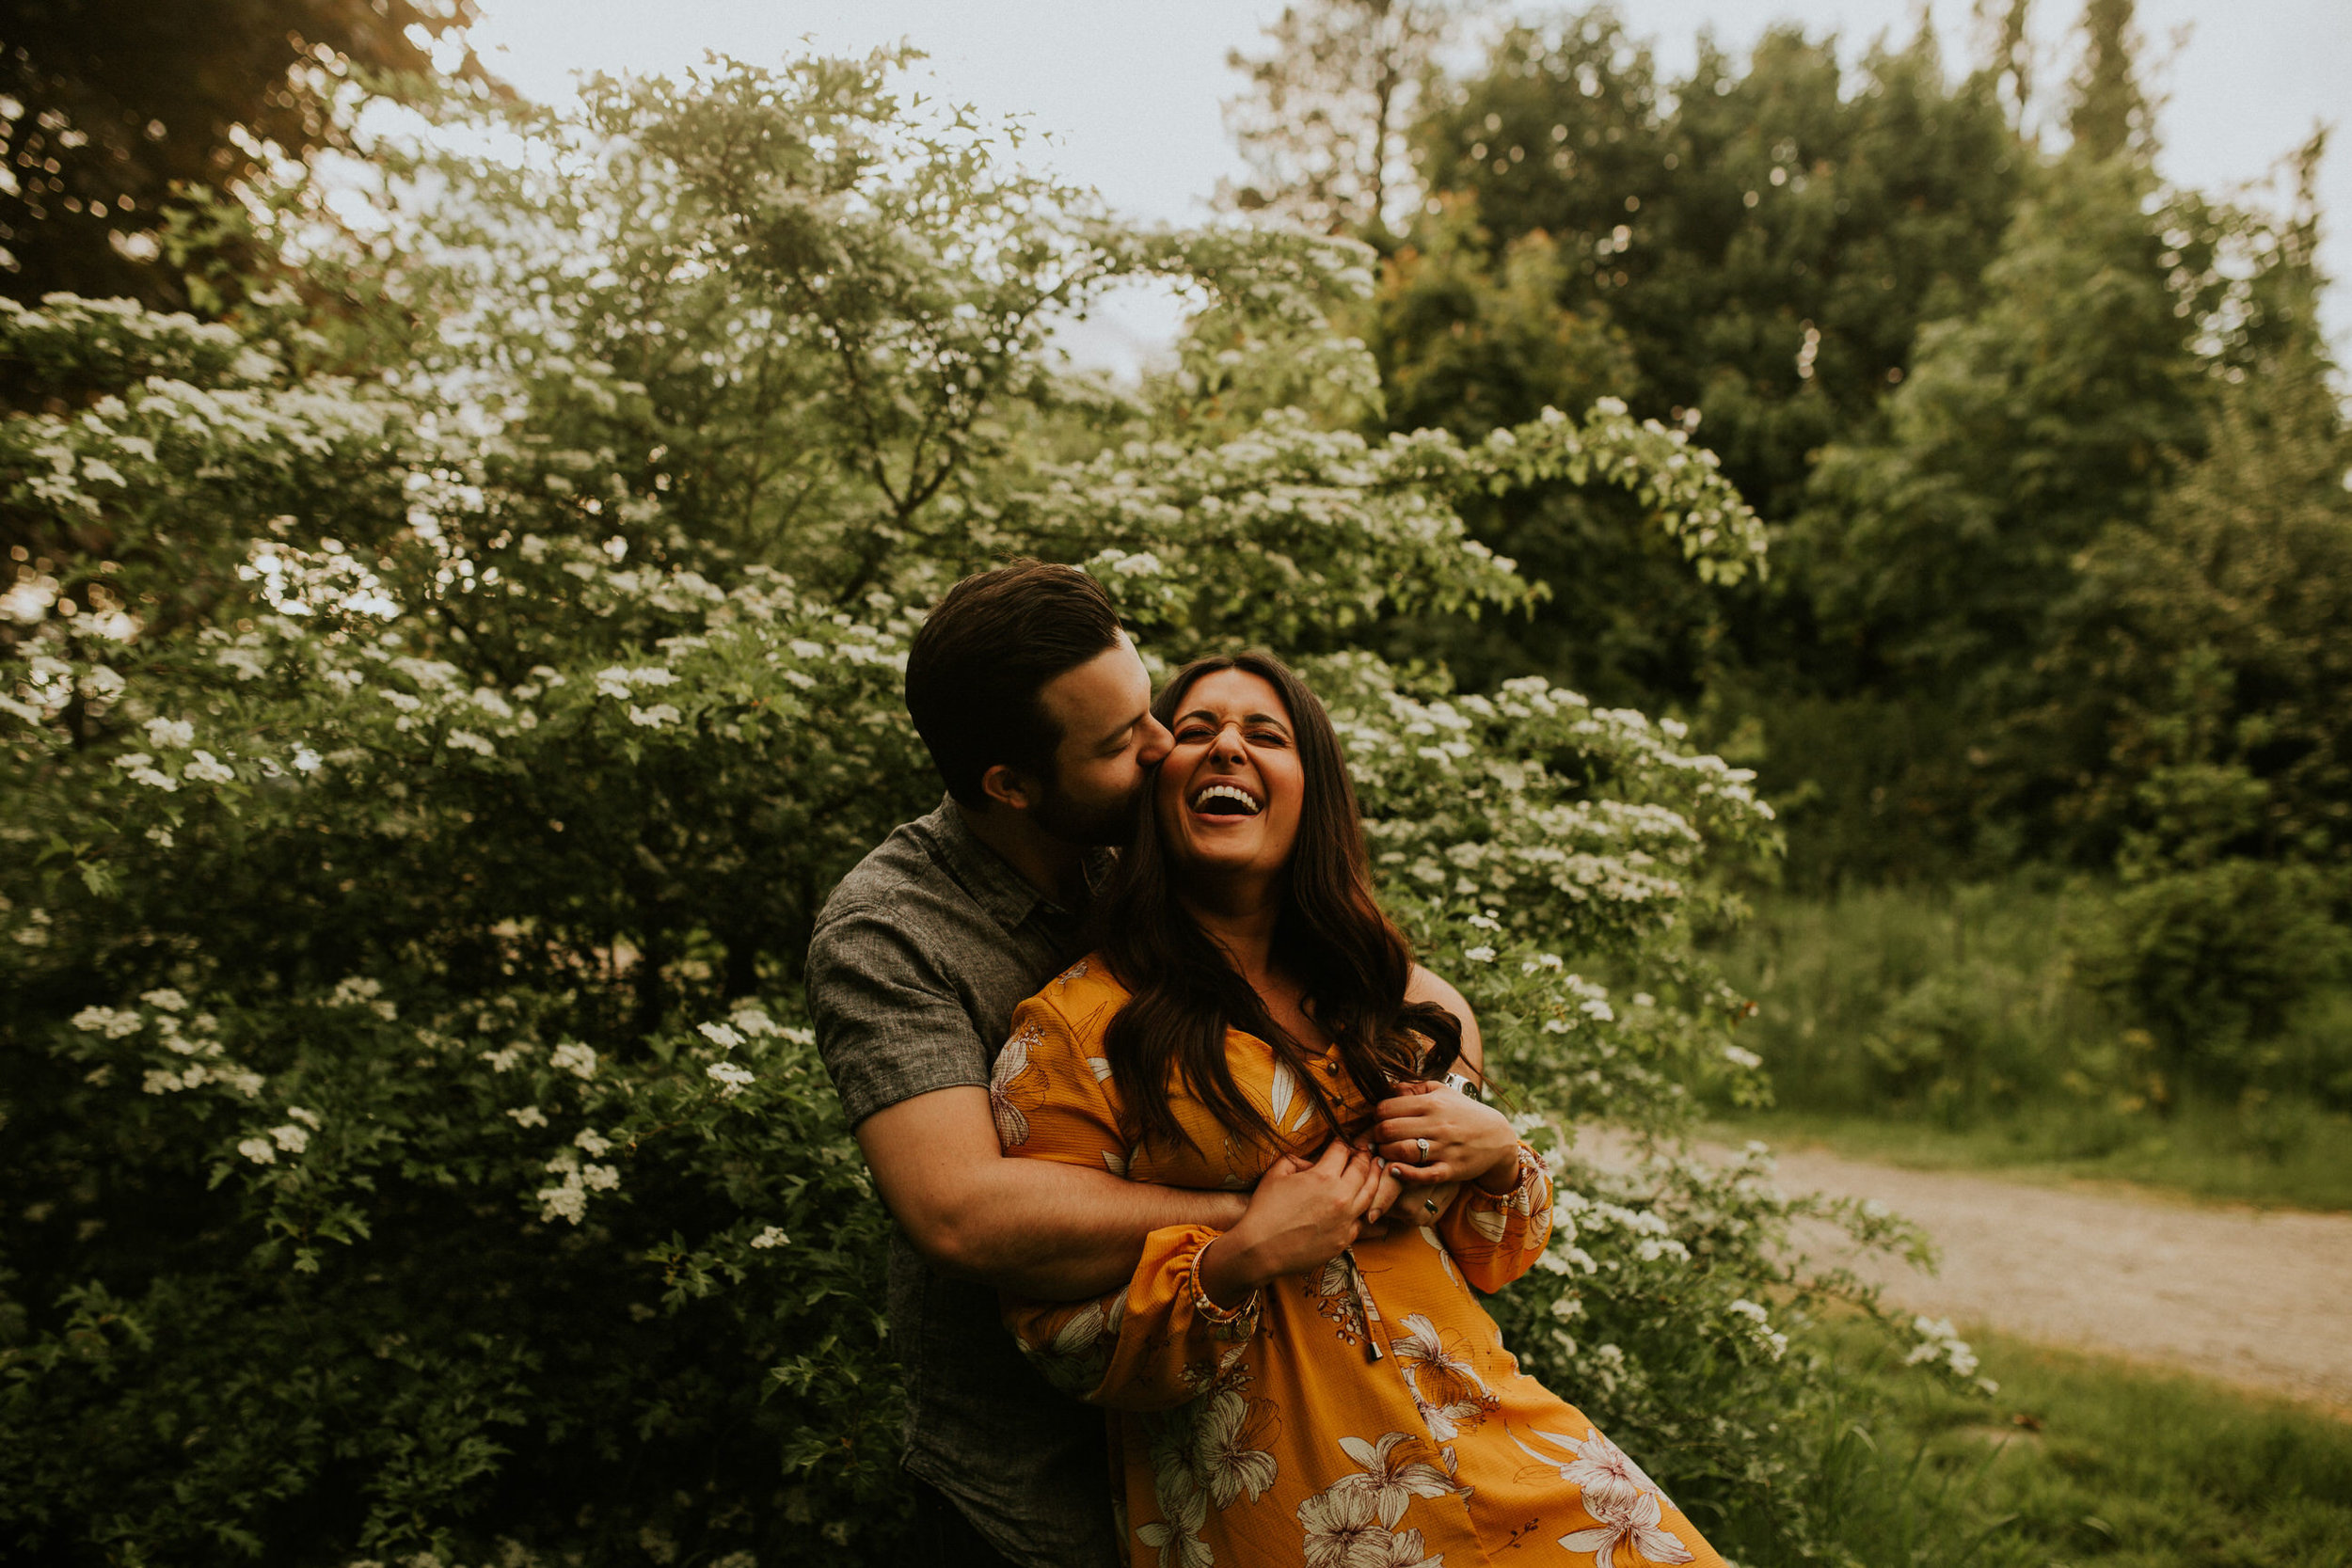 Miriam + Kyle discovery park engagement session seattle elopement photographer breeanna lasher